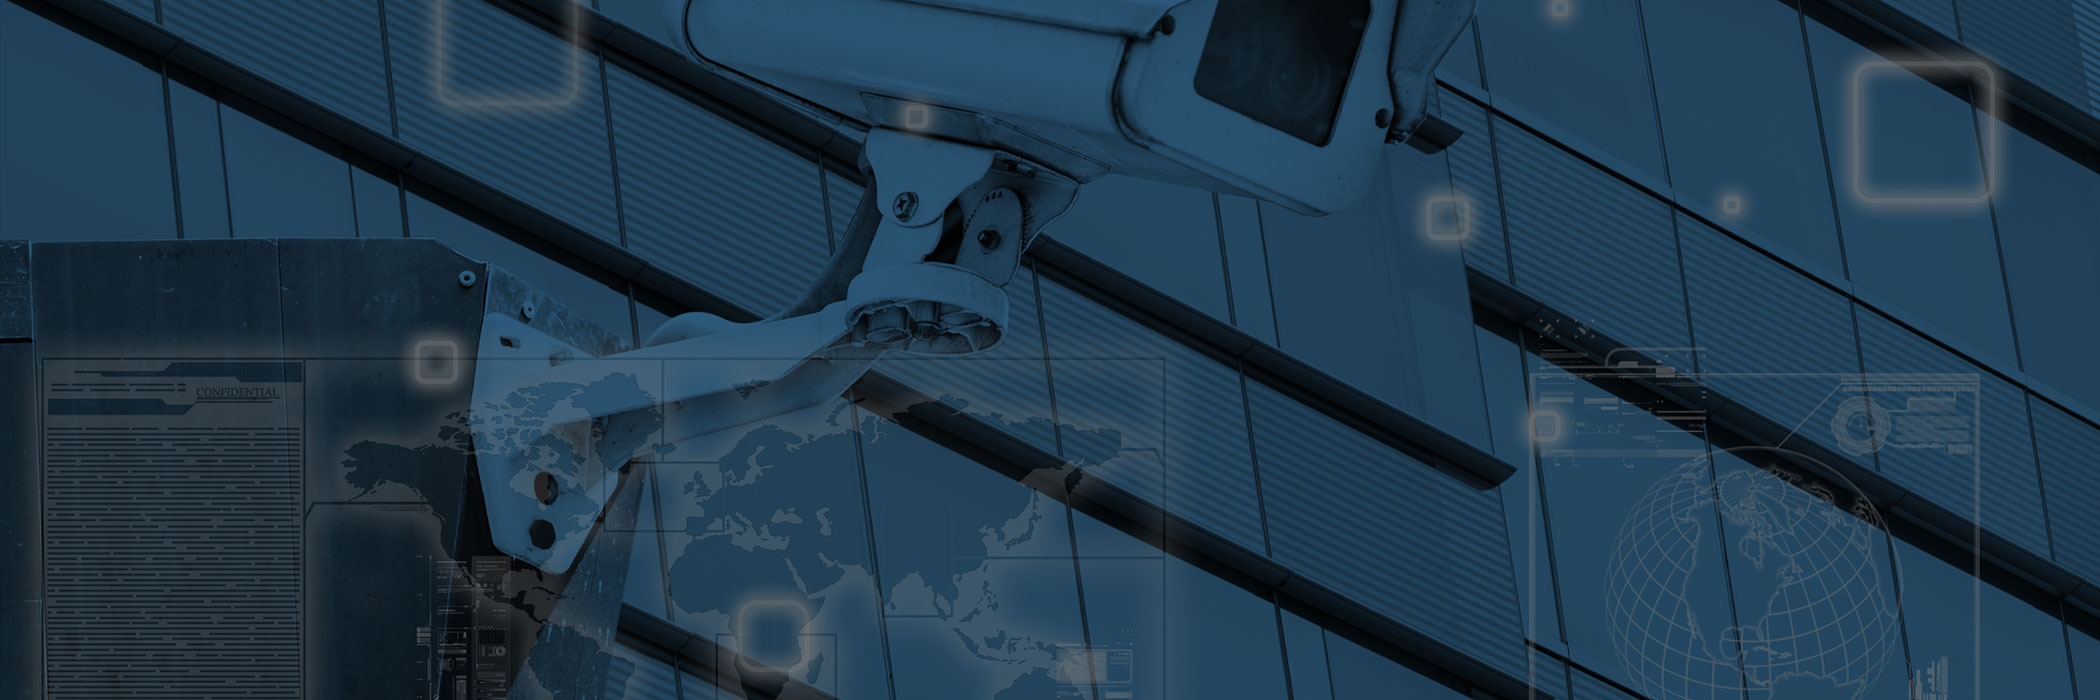 Ads Systems  U2013 Alarms  Video  Access  Monitoring  Audio Visual